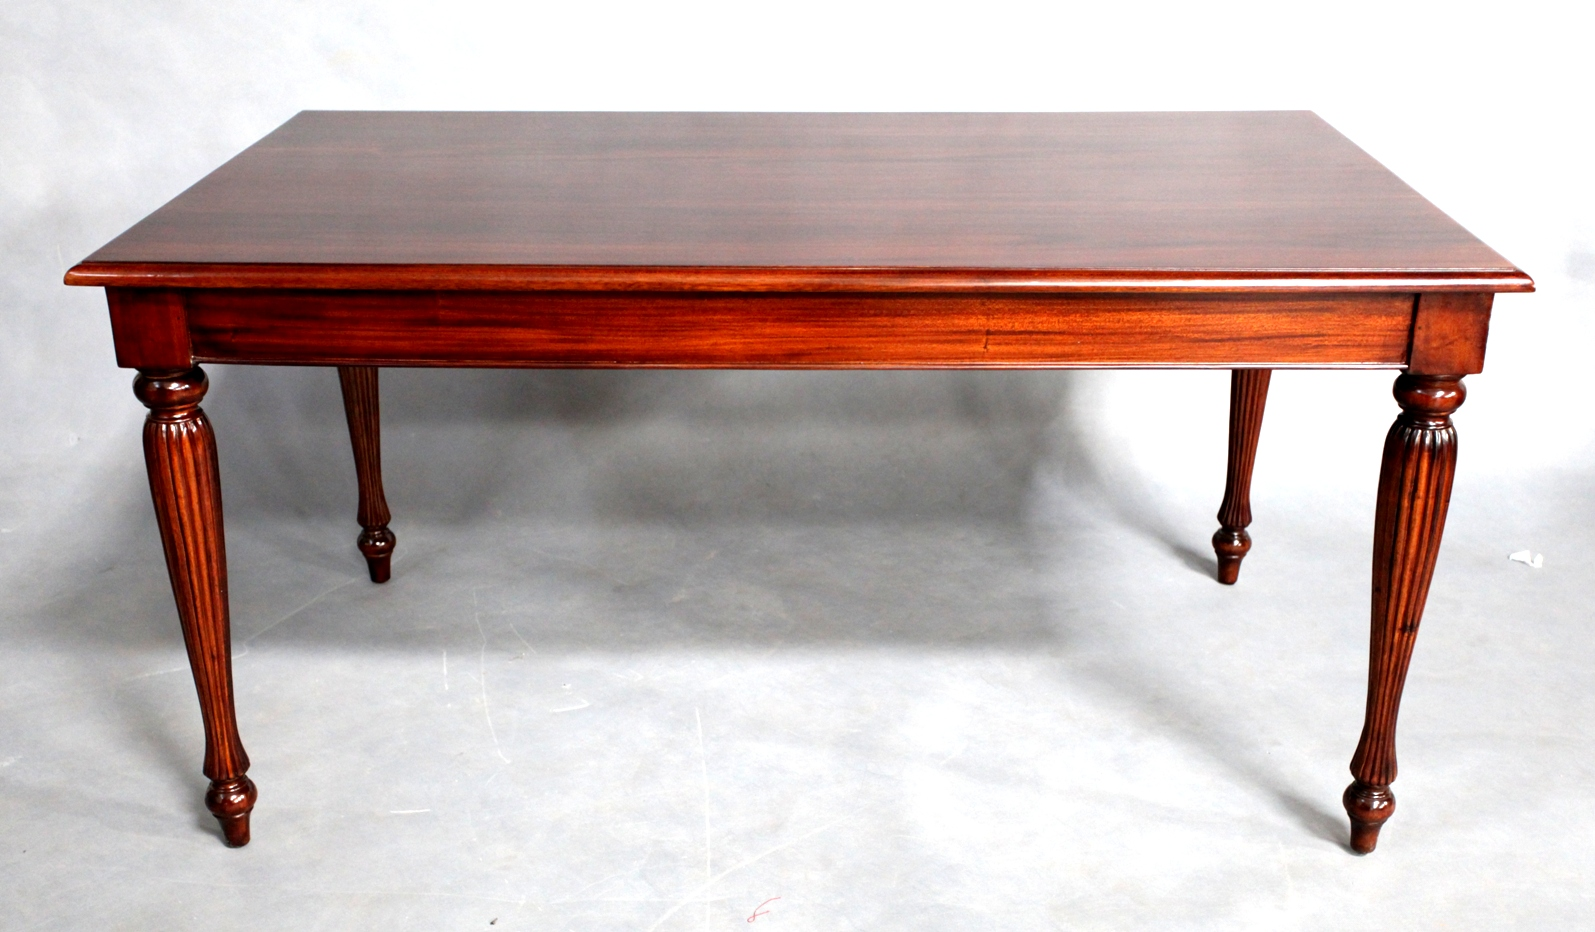 Solid Mahogany Wood Regency Rectangular Dining Table Antique Style Turendav Australia Antique Reproduction Furniture